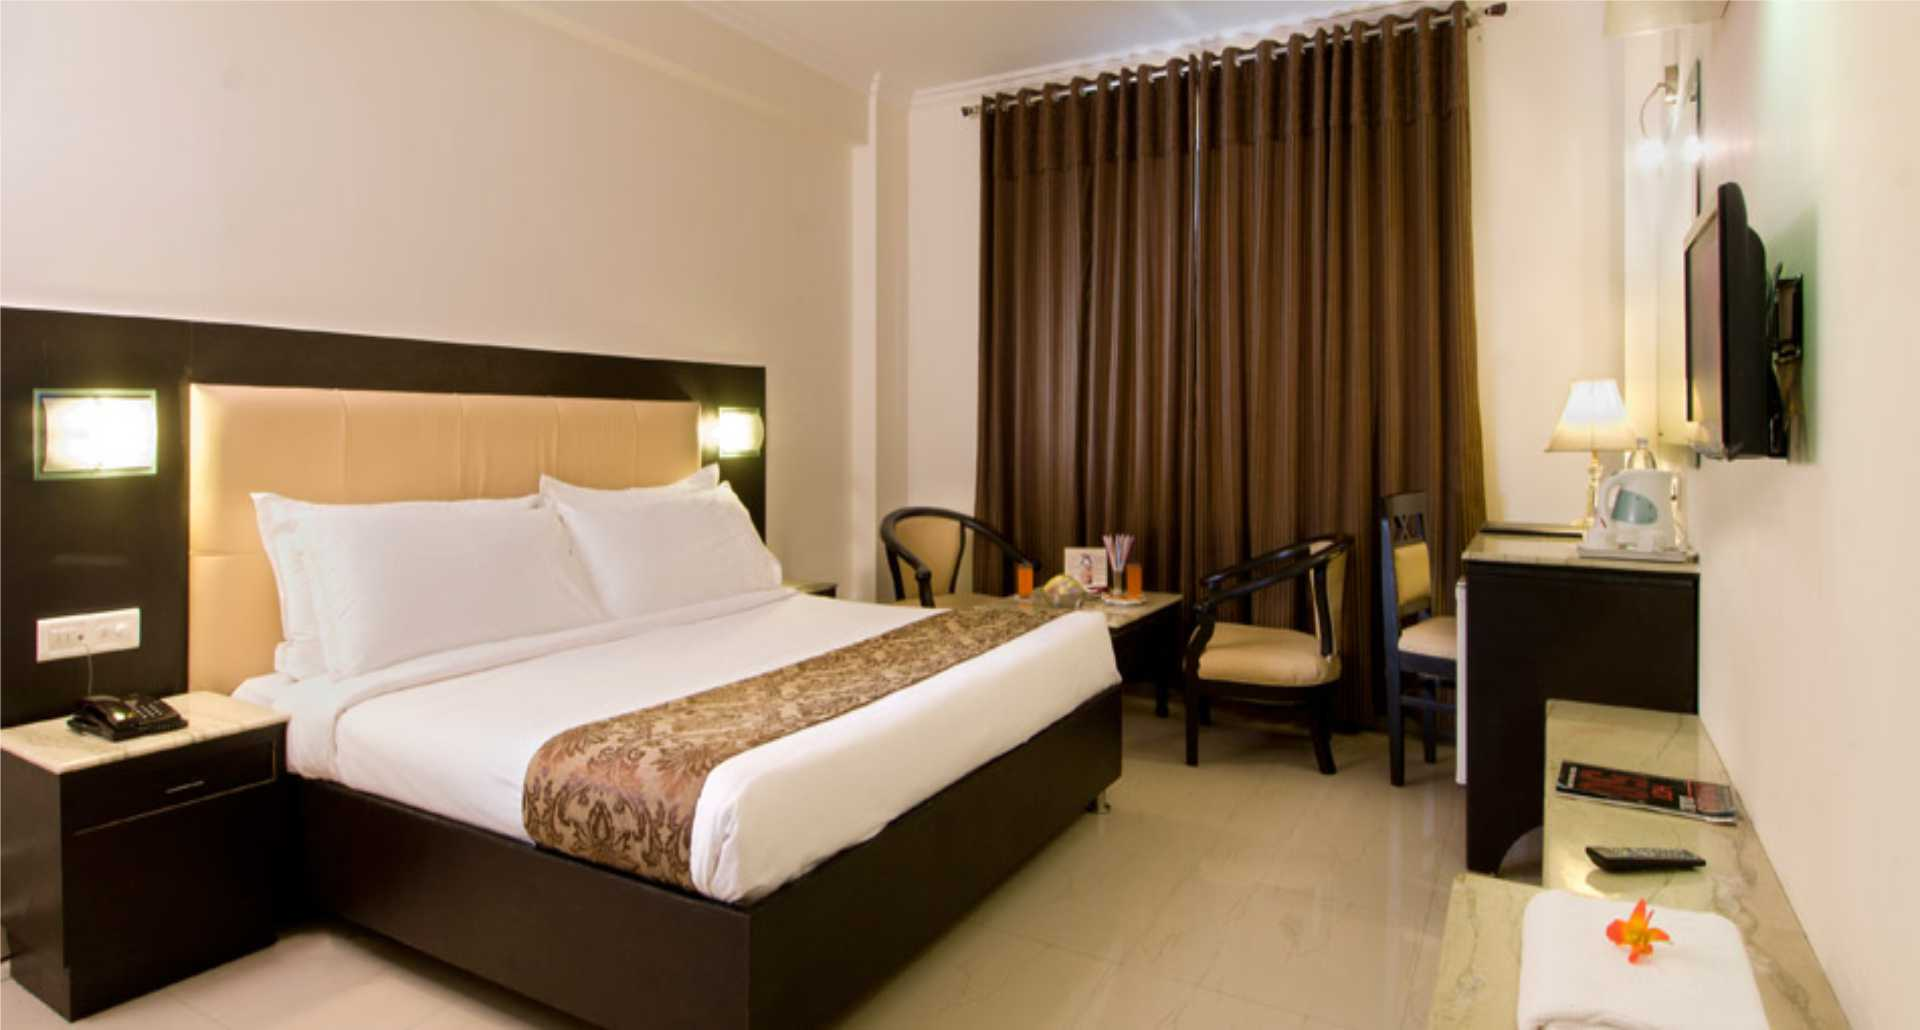 Hotel accommodation in Agra